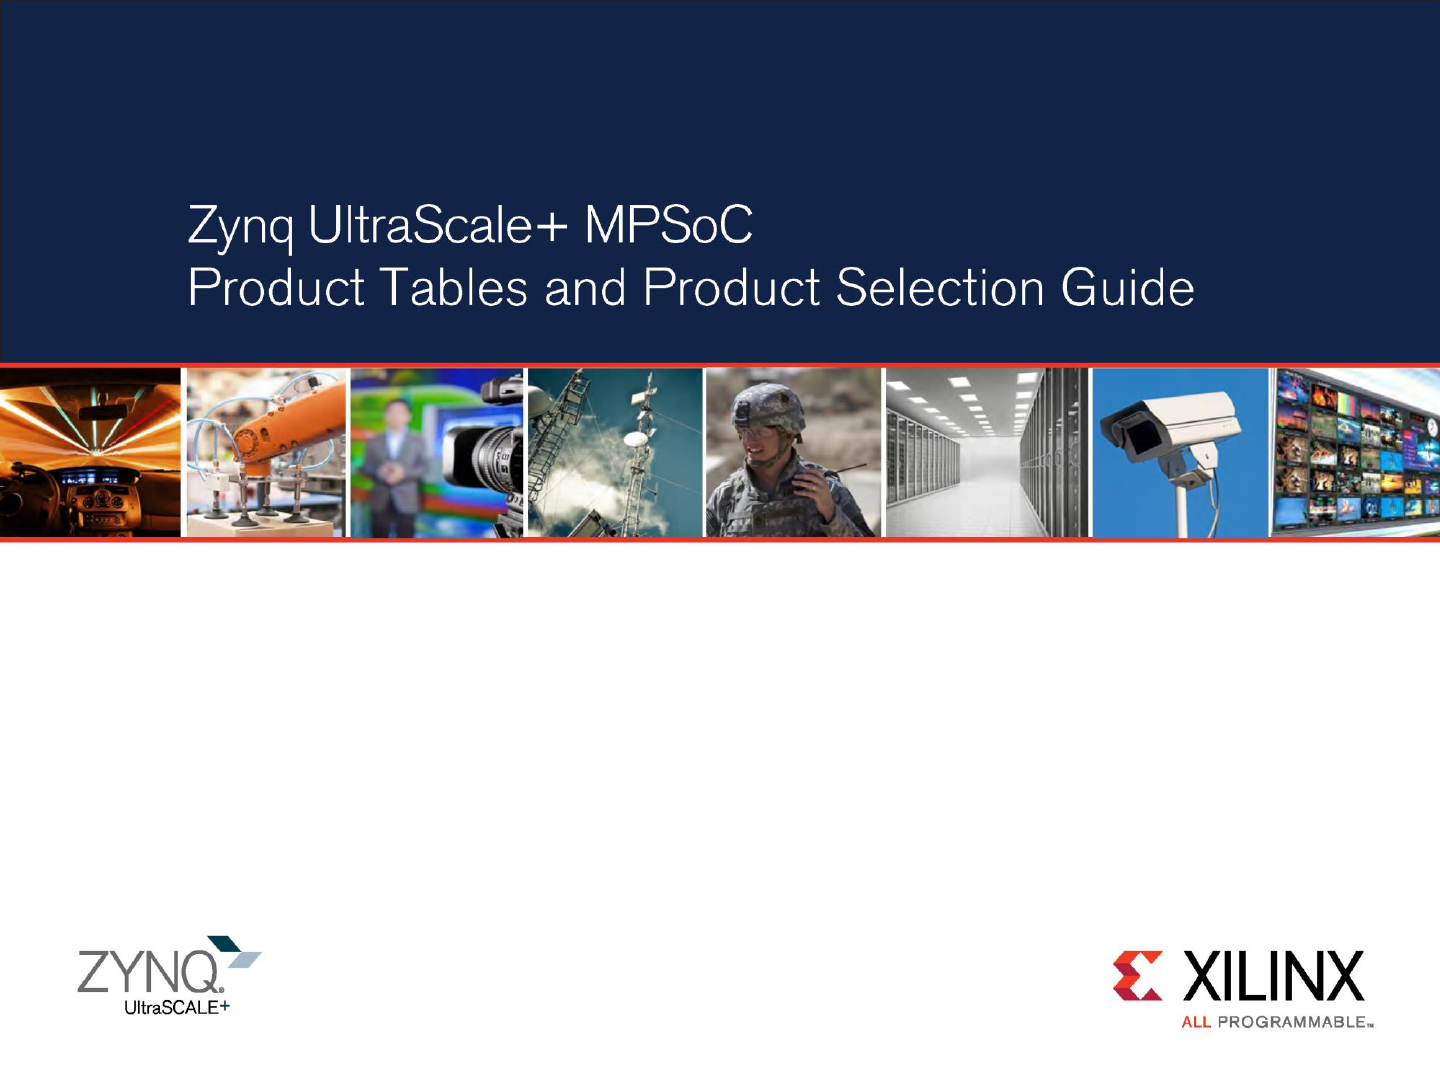 Zynq UltraScale+ MPSoC Product Tables And Selection Guide